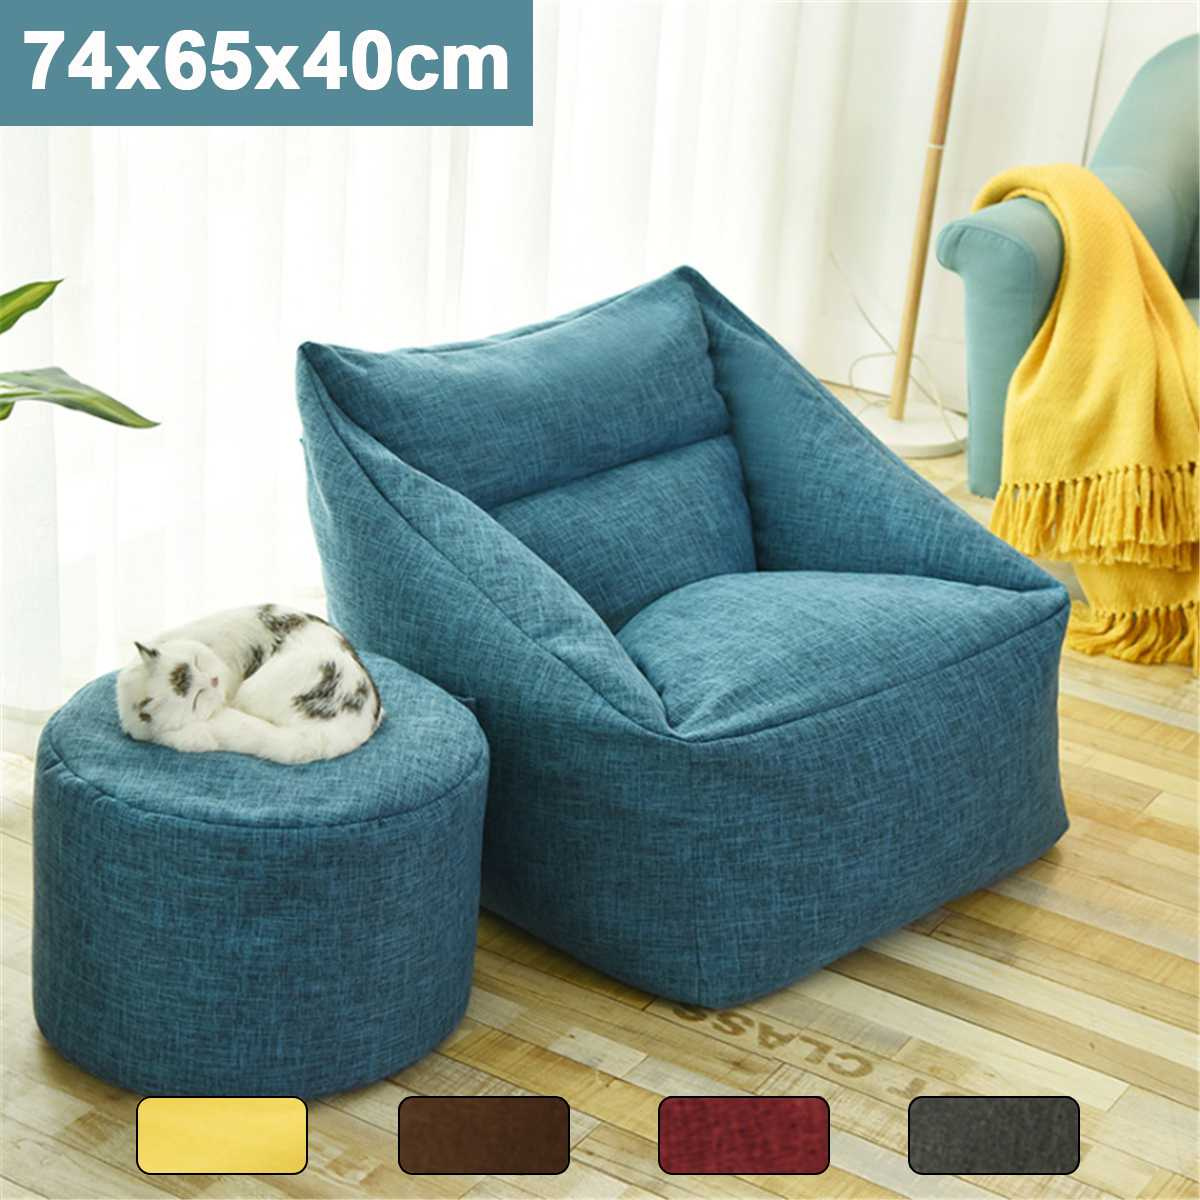 US $32.03 42% OFF|Waterproof Bean Bag Lazy Sofa Beanbag Sofas Indoor Seat  Chair Cover Large Bean Bag Cover Armchair Washable Room Furniture-in Bean  ...